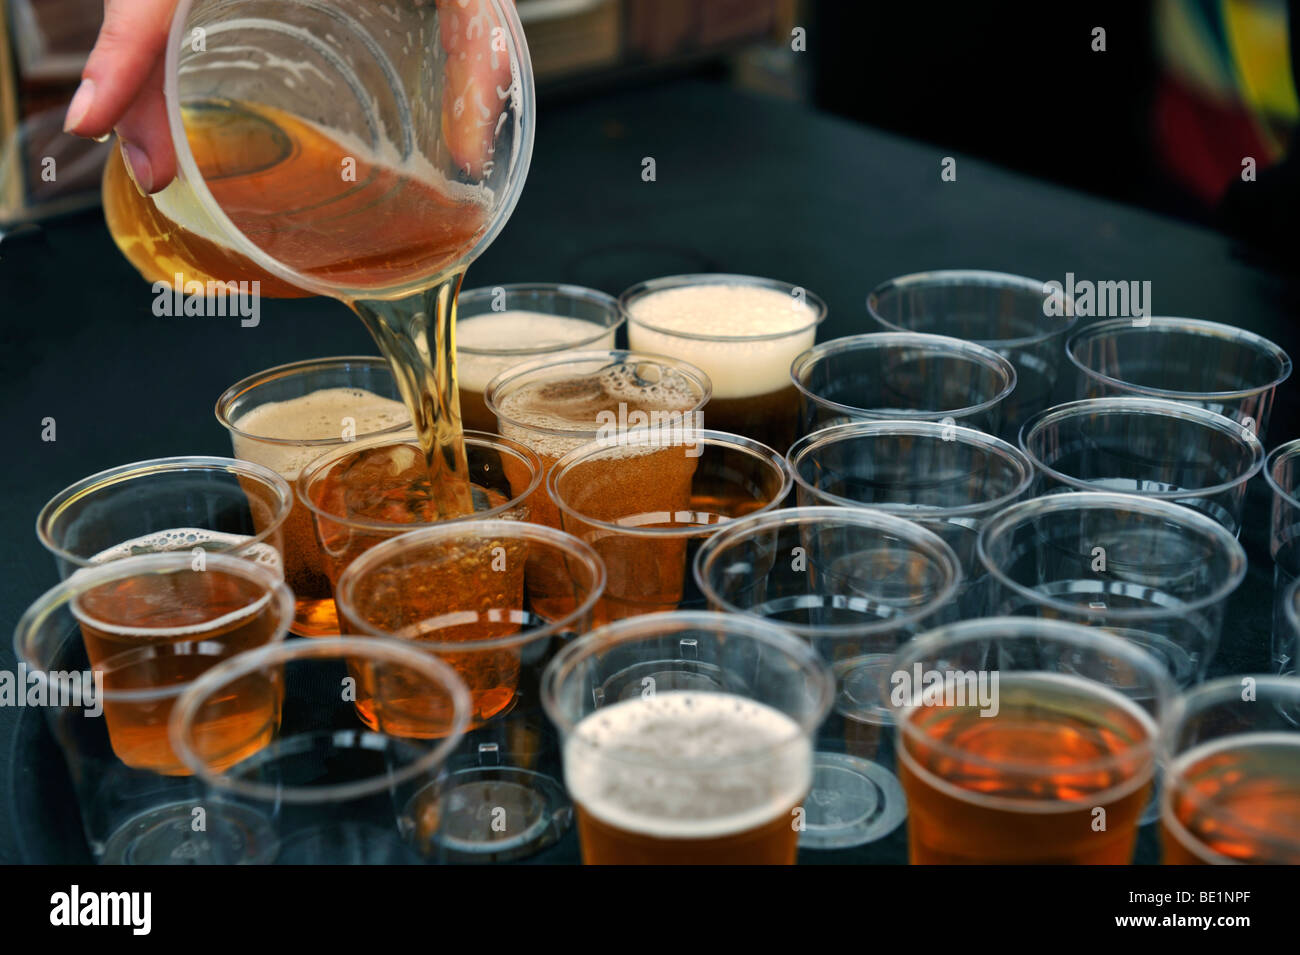 Pouring beer from pint glass into small sampling glasses - Stock Image